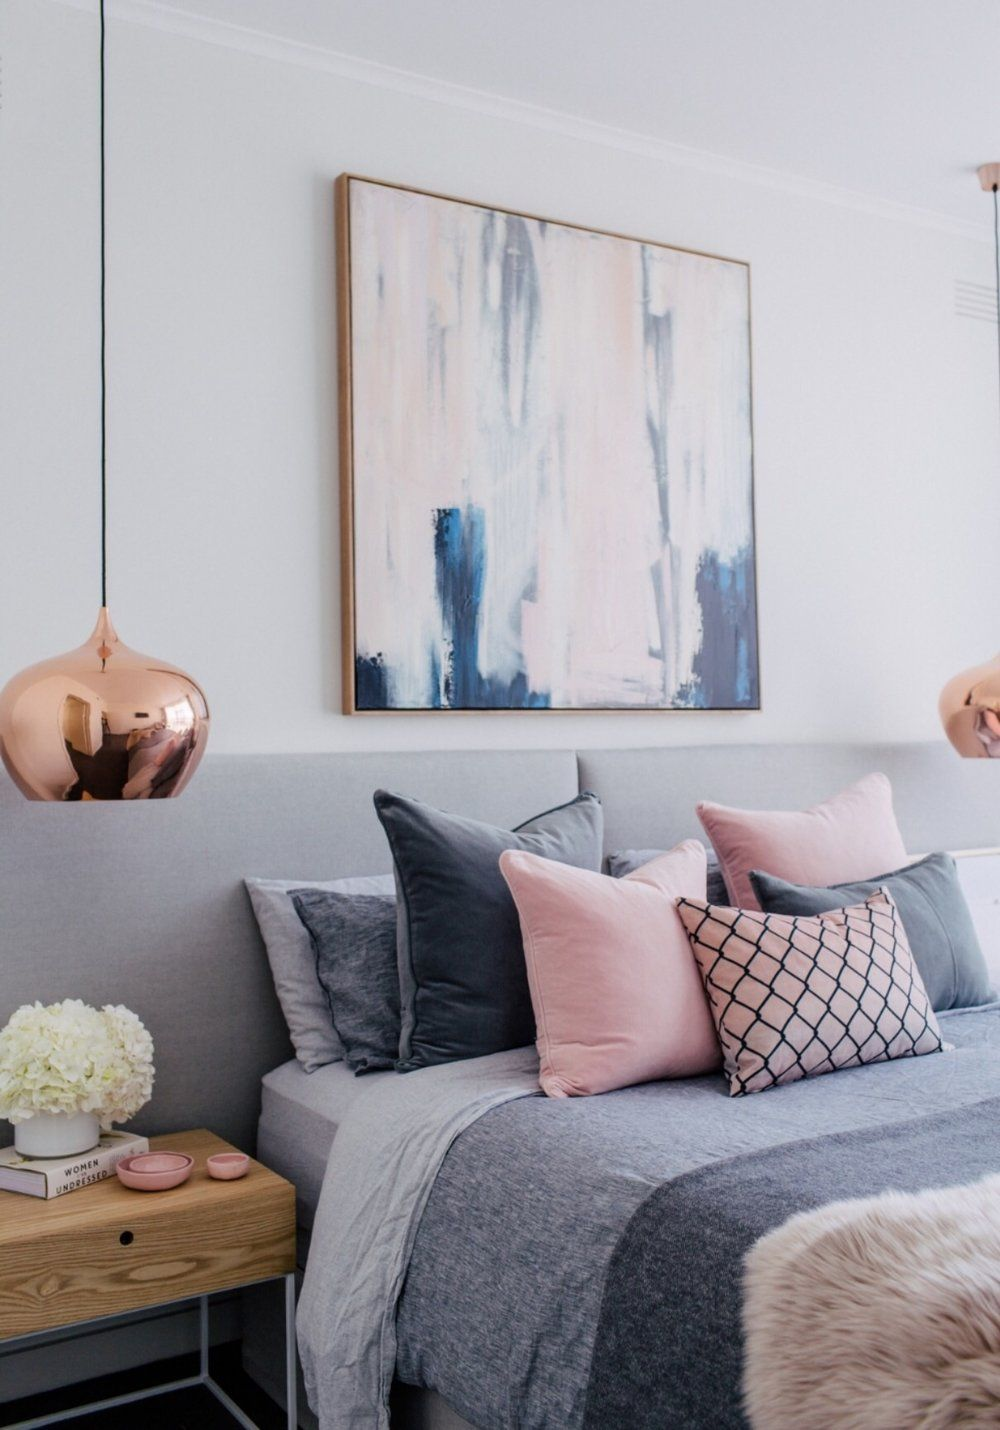 Merveilleux Bedroom Inspiration For A Great And Pink Blush Scheme With Copper, Textures  And Coloured Cushion